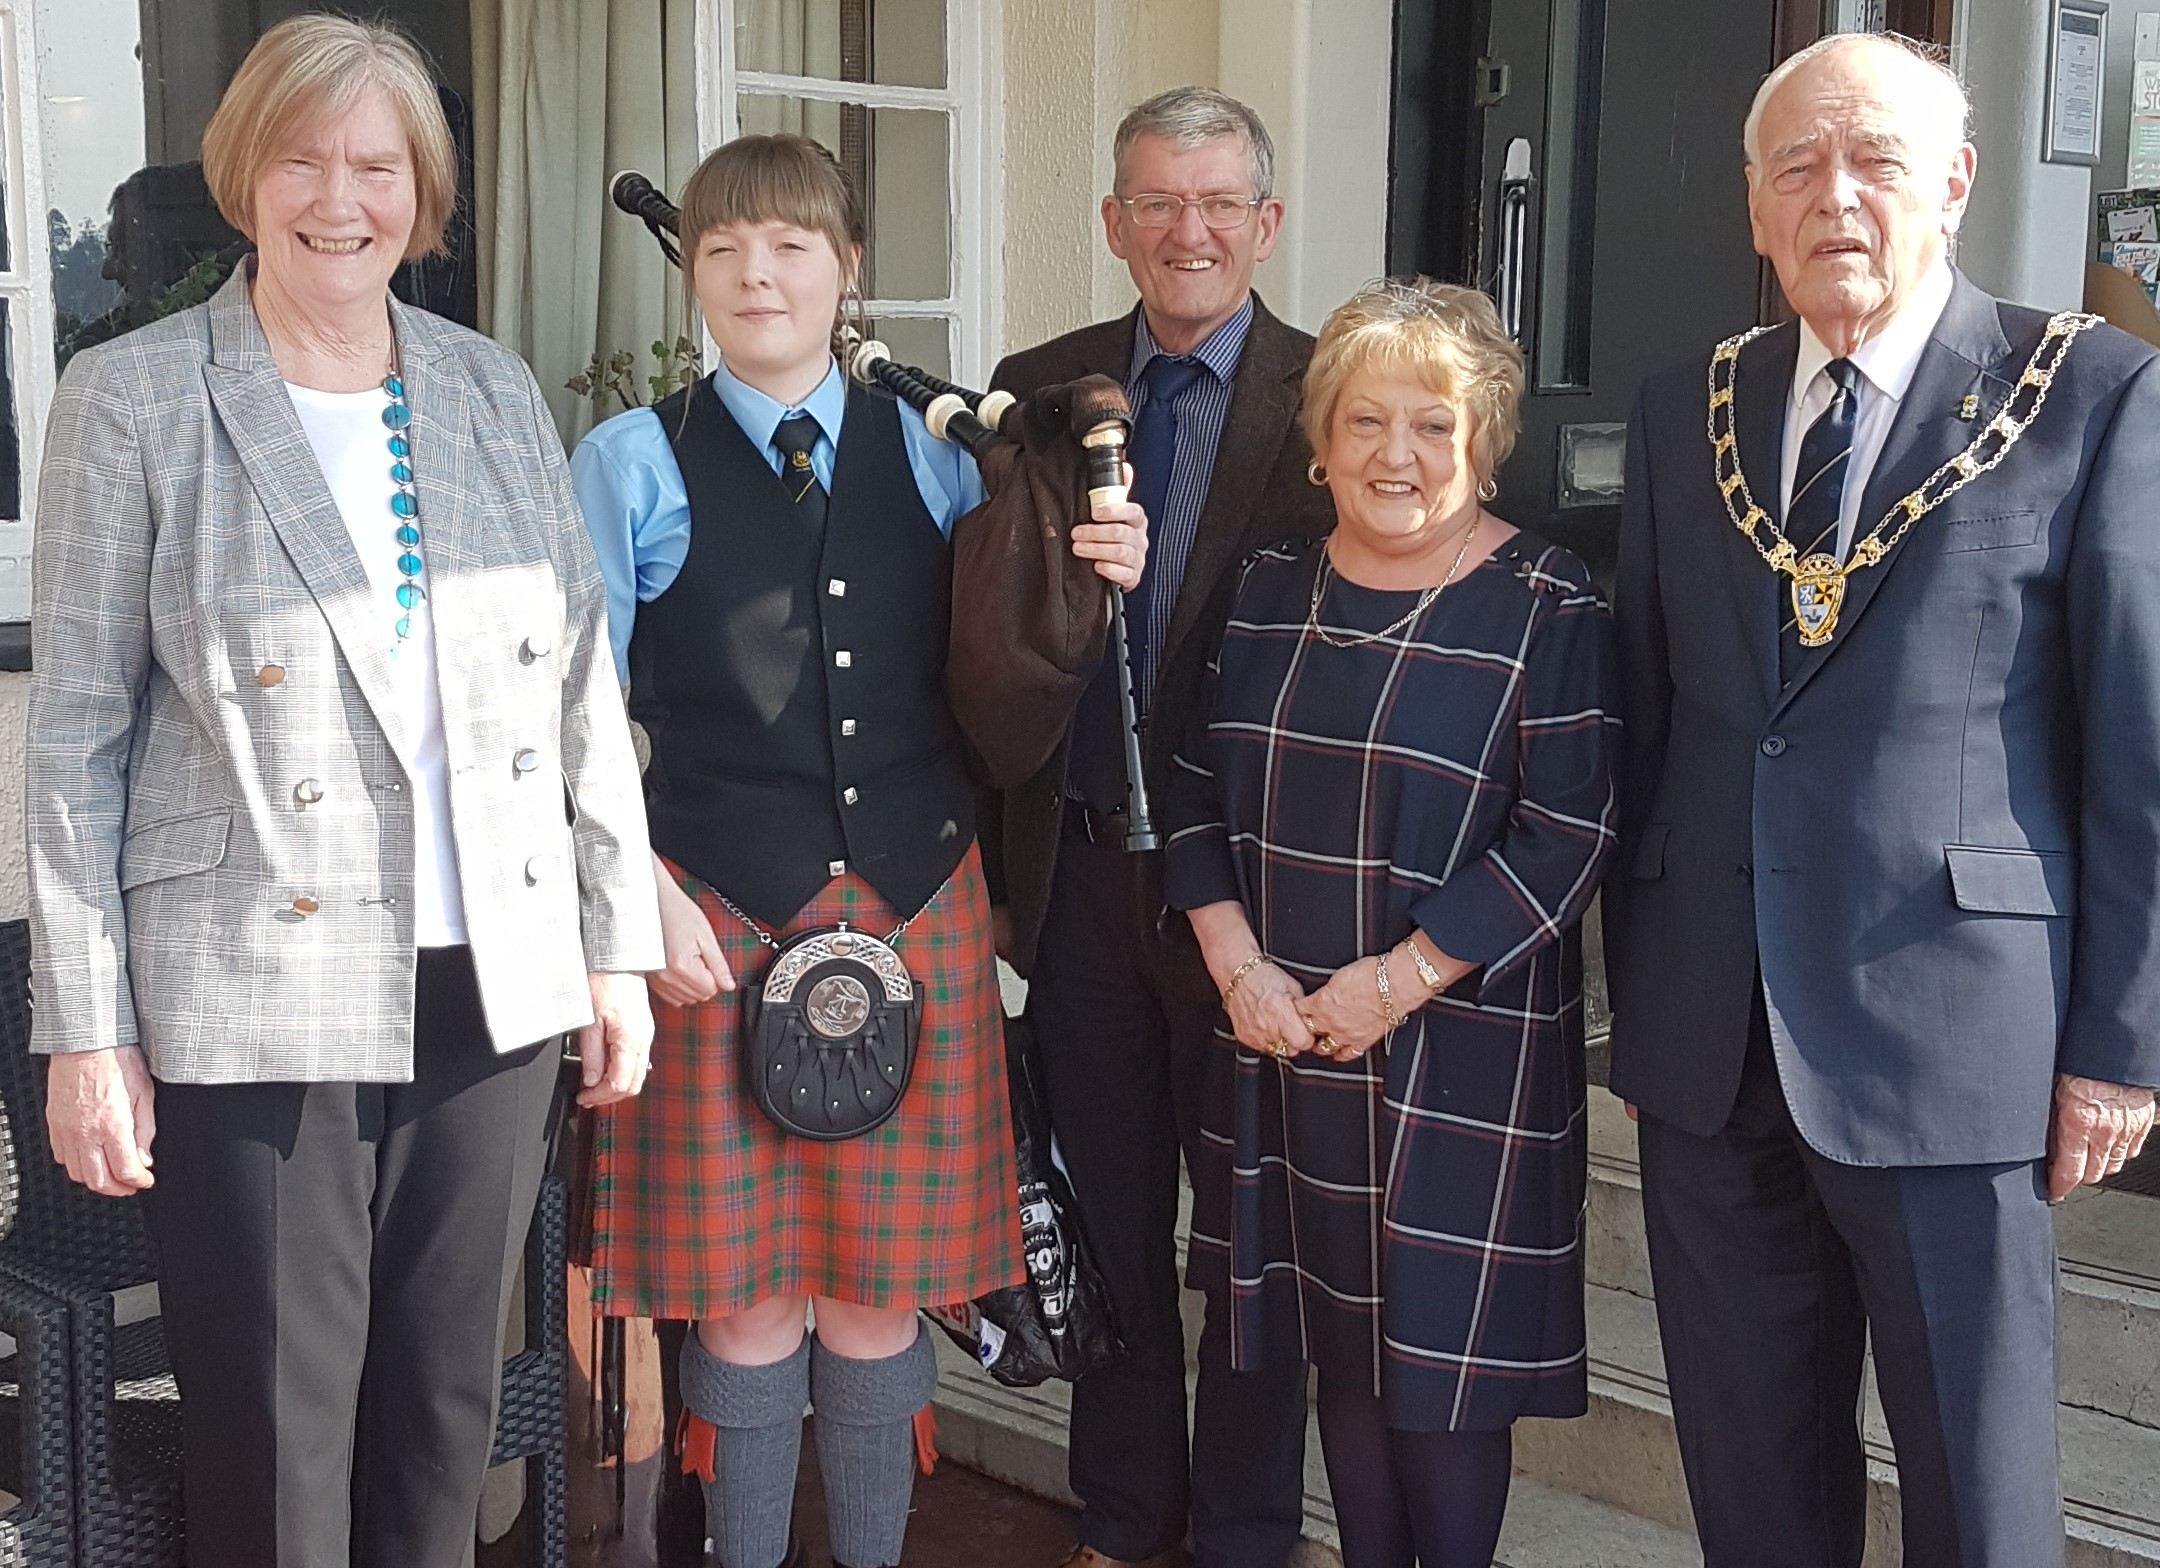 A photo of the Provost at the festival launch